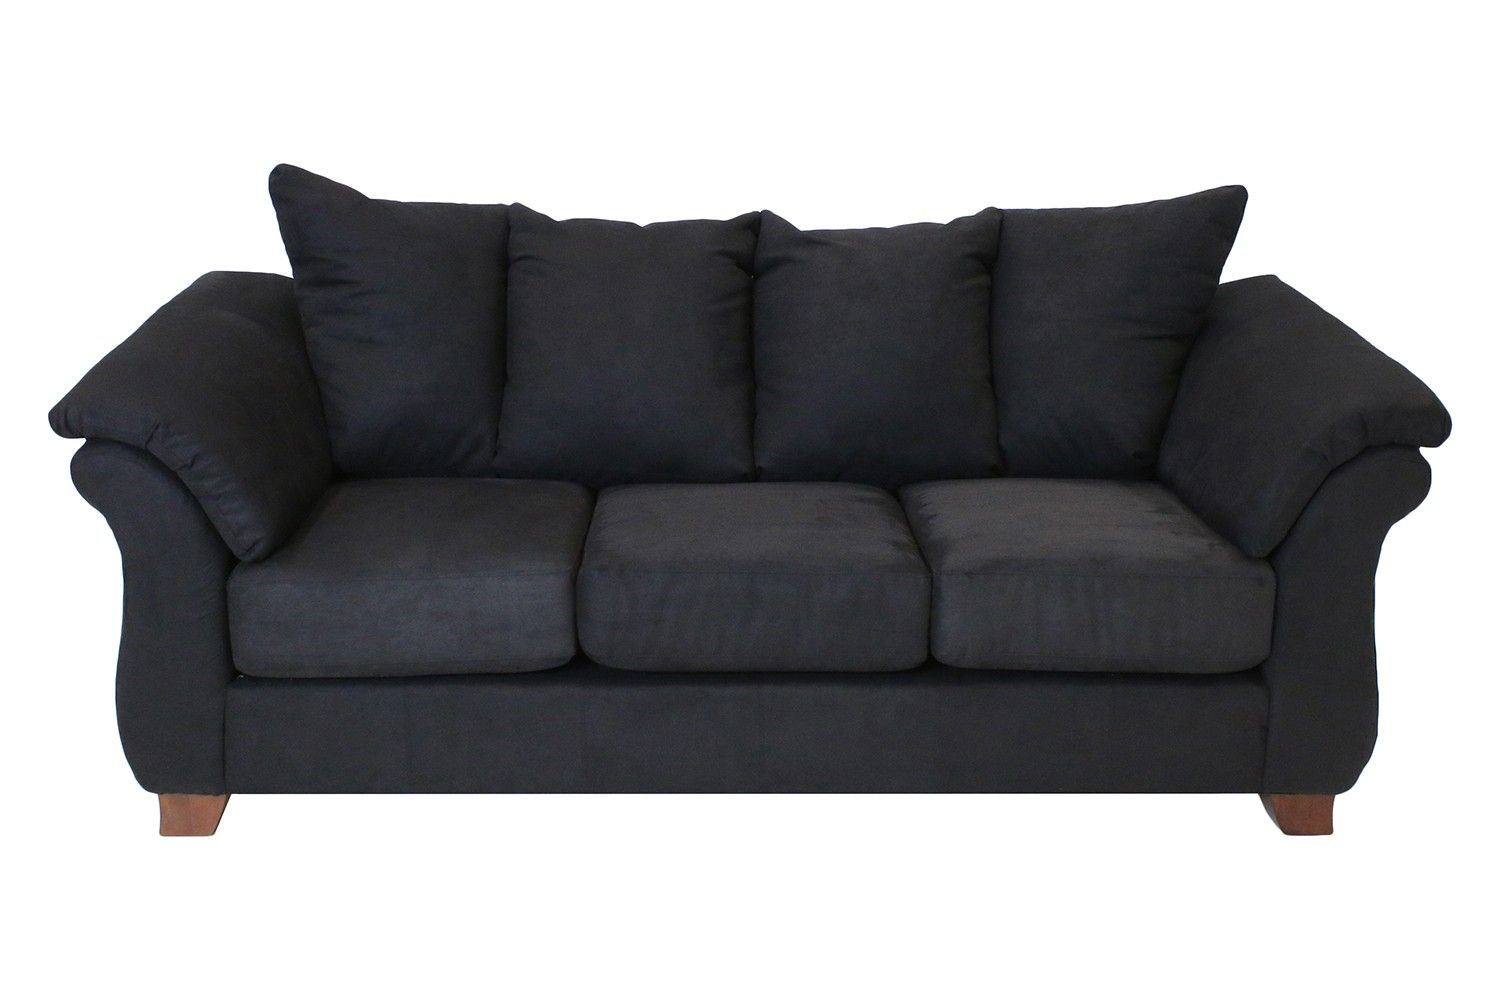 Shasta Black Sofa   Sofas   Living Room | Mor Furniture For Less